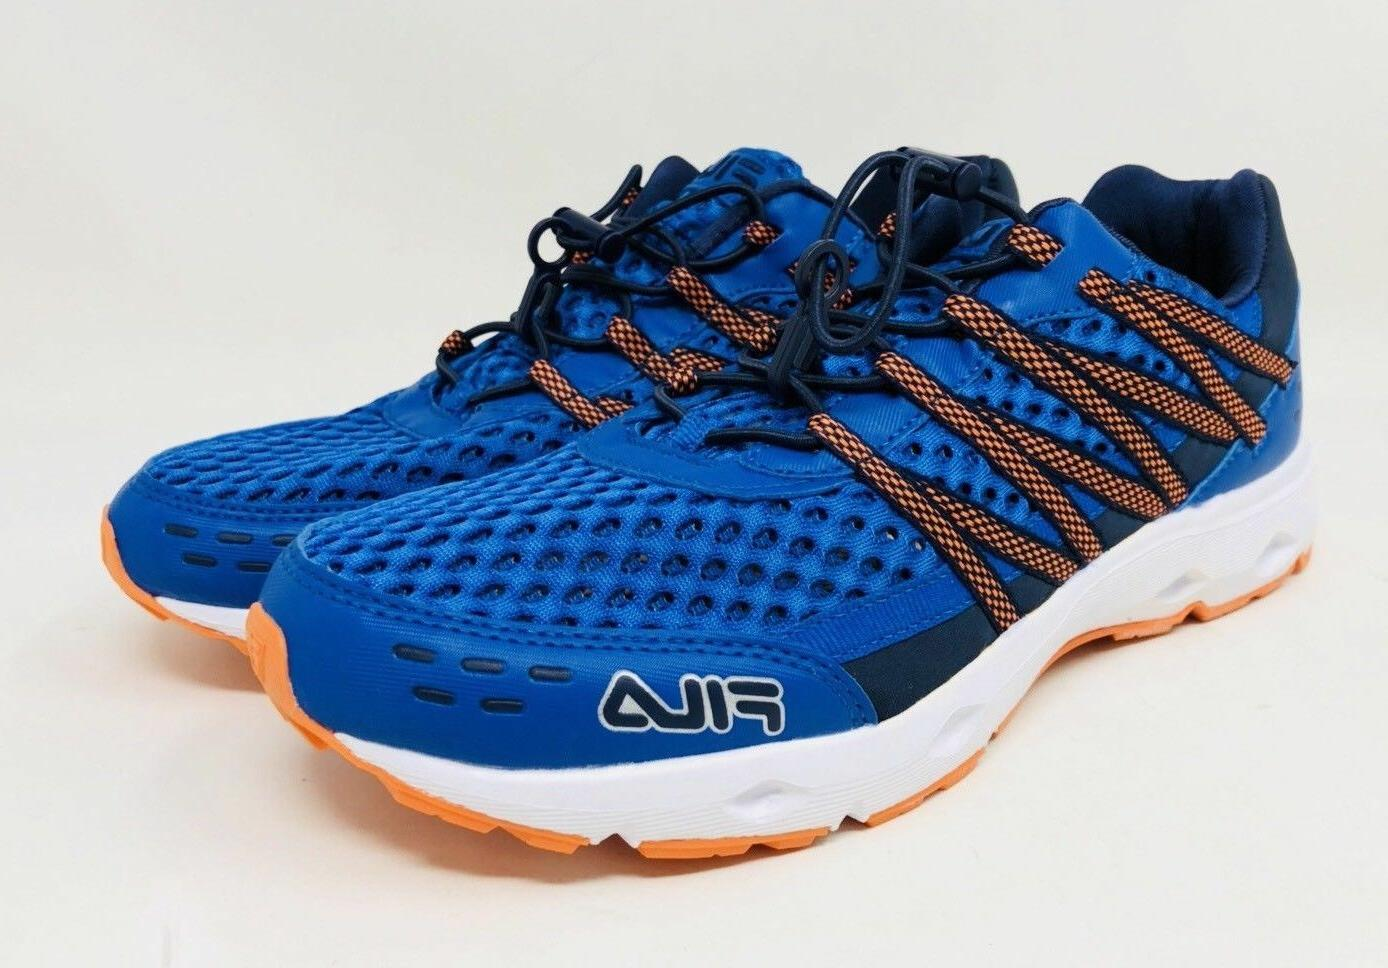 FILA Men's Sorento Sneaker Shoes Pick A Size Blue/Orange